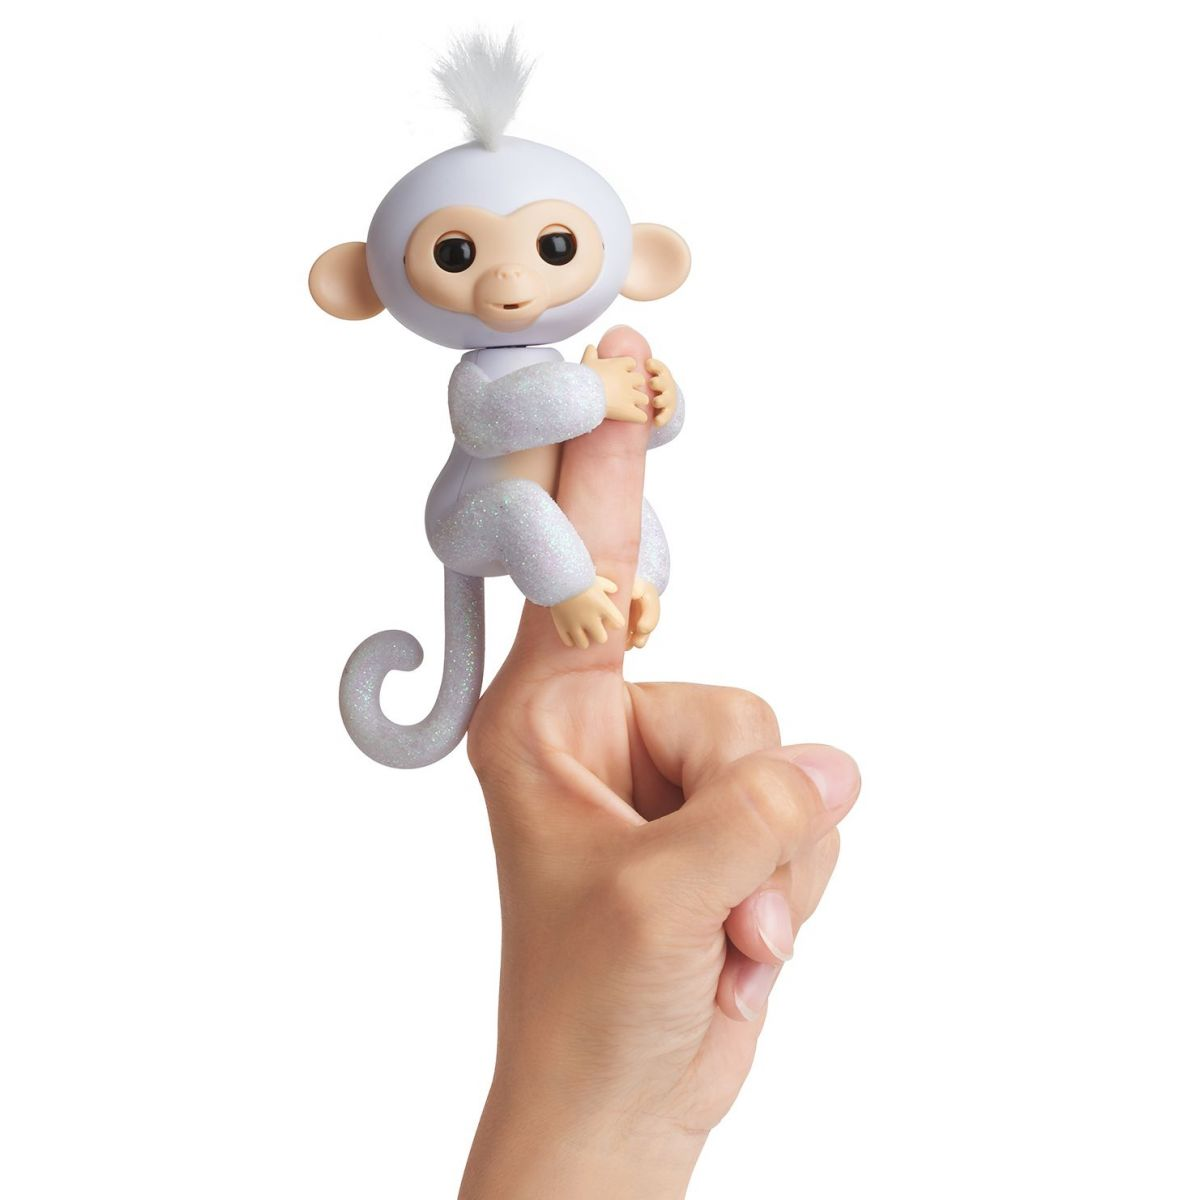 Fingerlings Opička třpytivá Sugar bílá